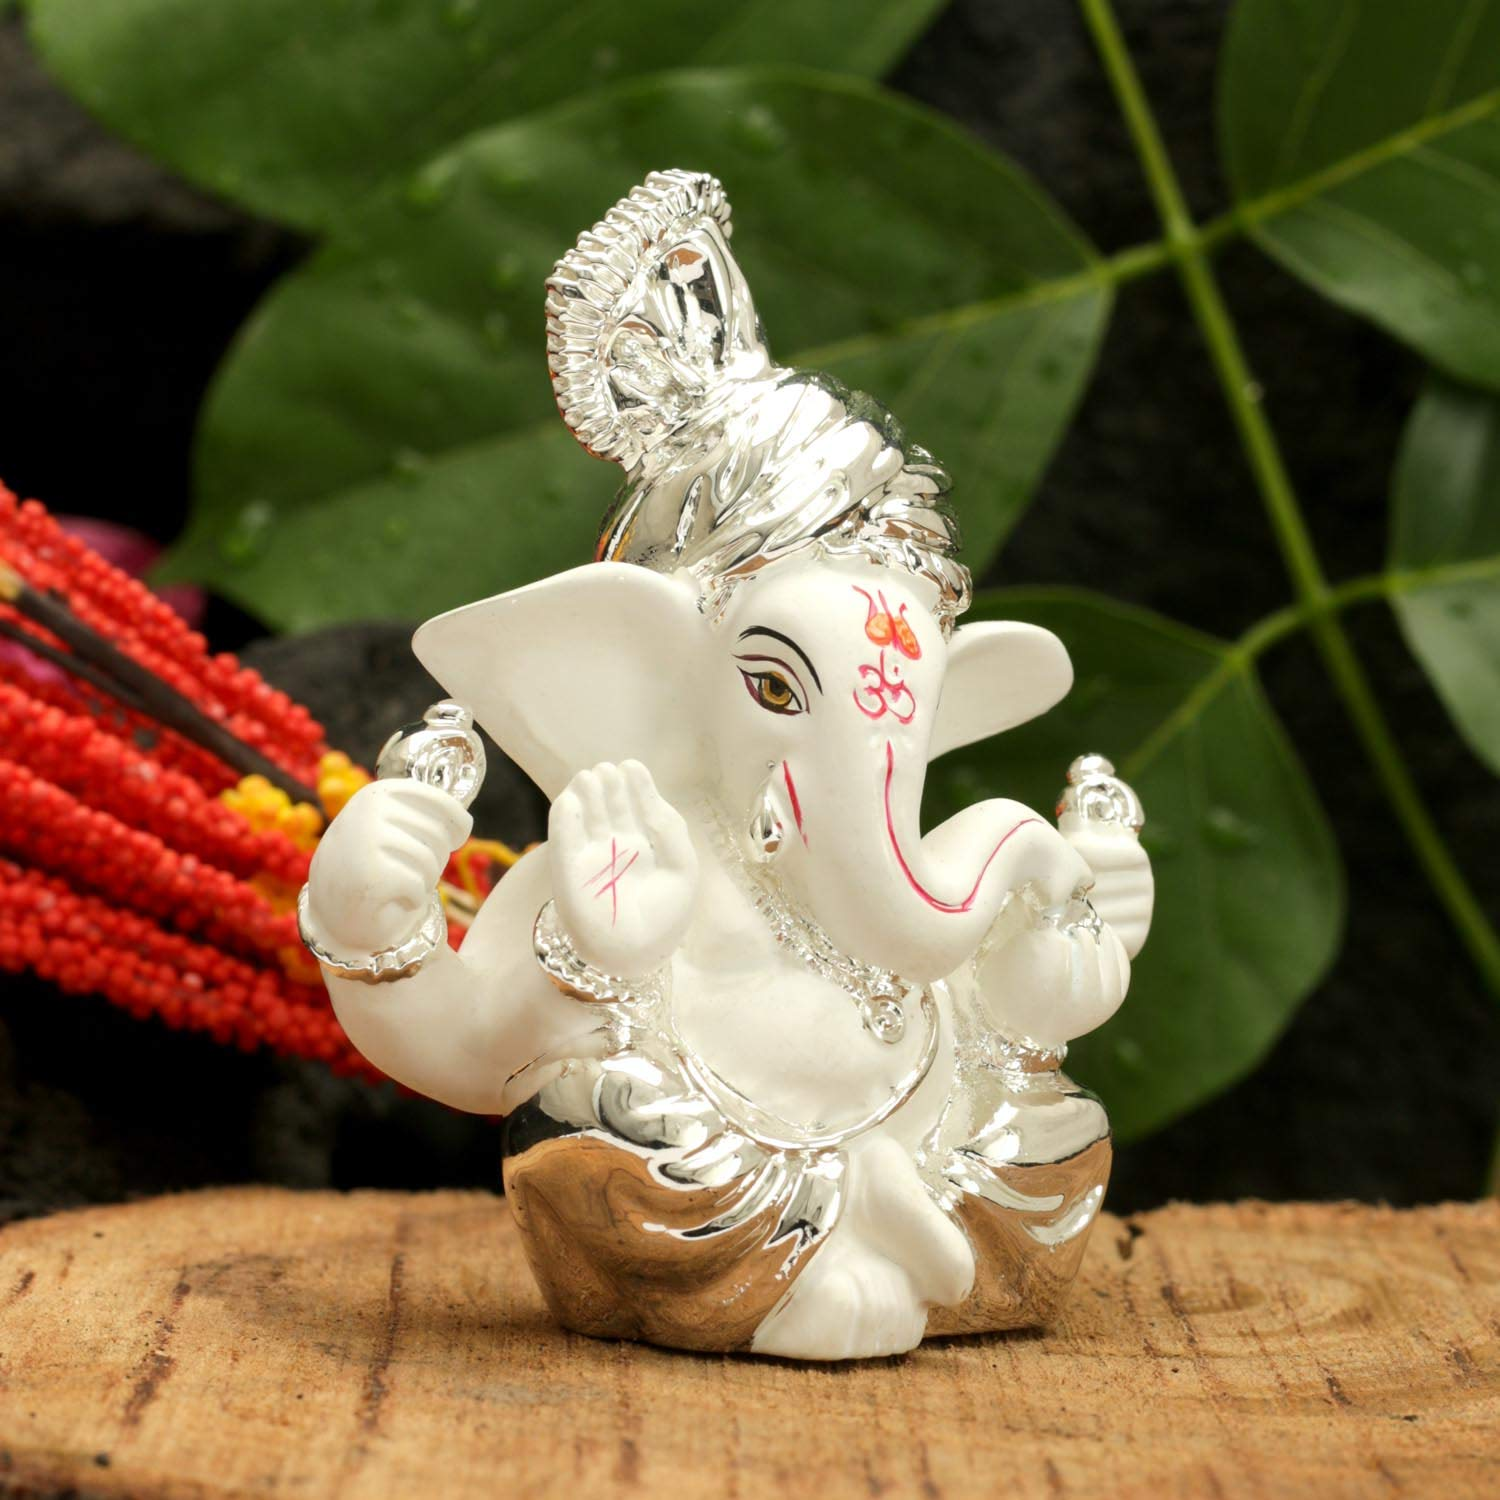 Size 8 x 6 cm CraftVatika Silver Plated Pagdi Ganesha for Car Dashboard Lord Ganesh Ganpati Idols Home Decor Gifts for Family and Friends